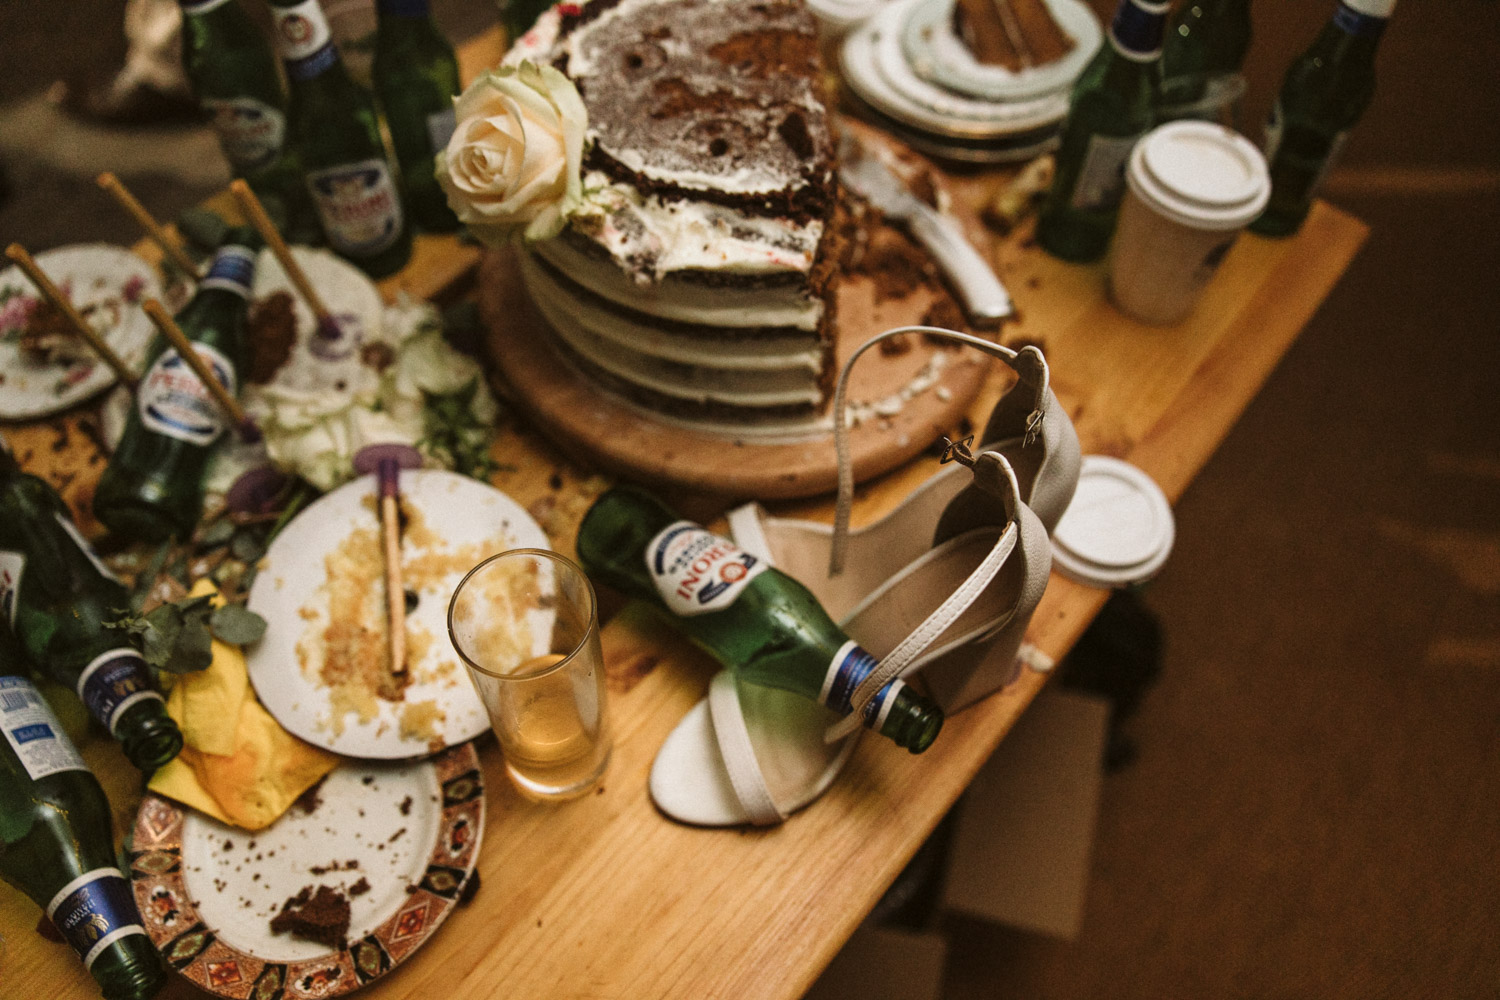 the half eaten cake and table is a mess of empty bottles and the brides shoes are there